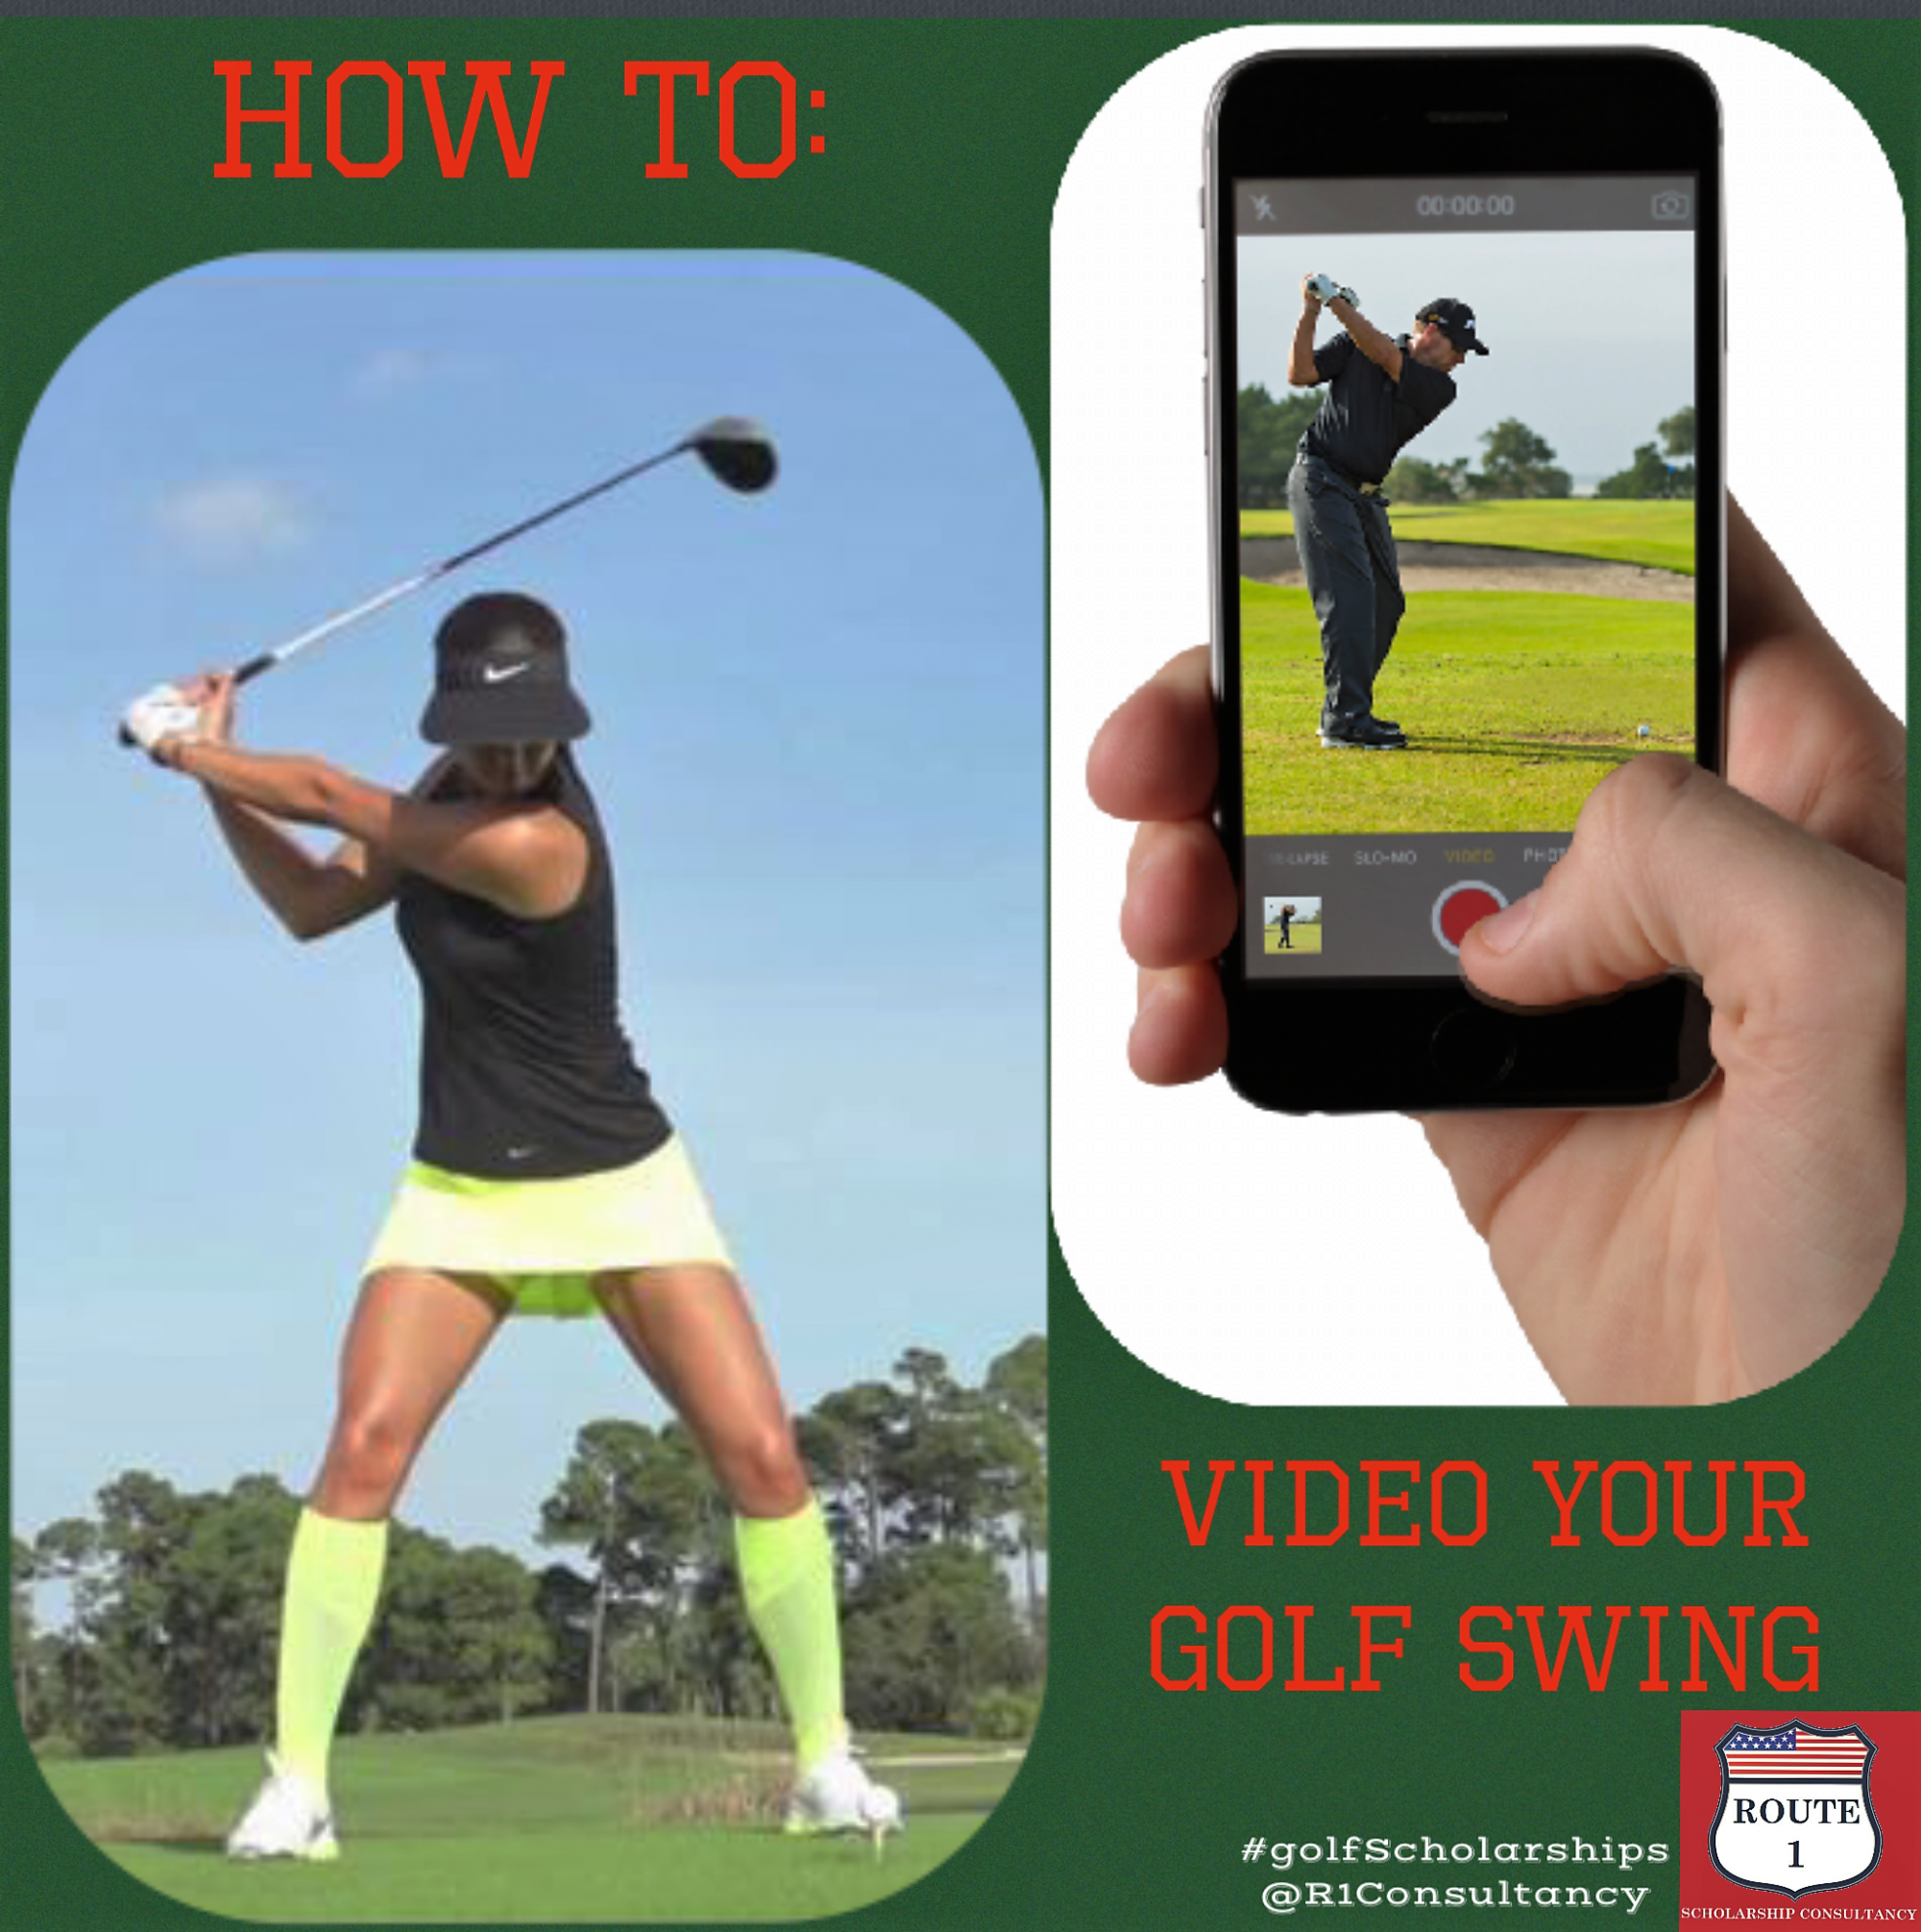 How To Video Your Golf Swing